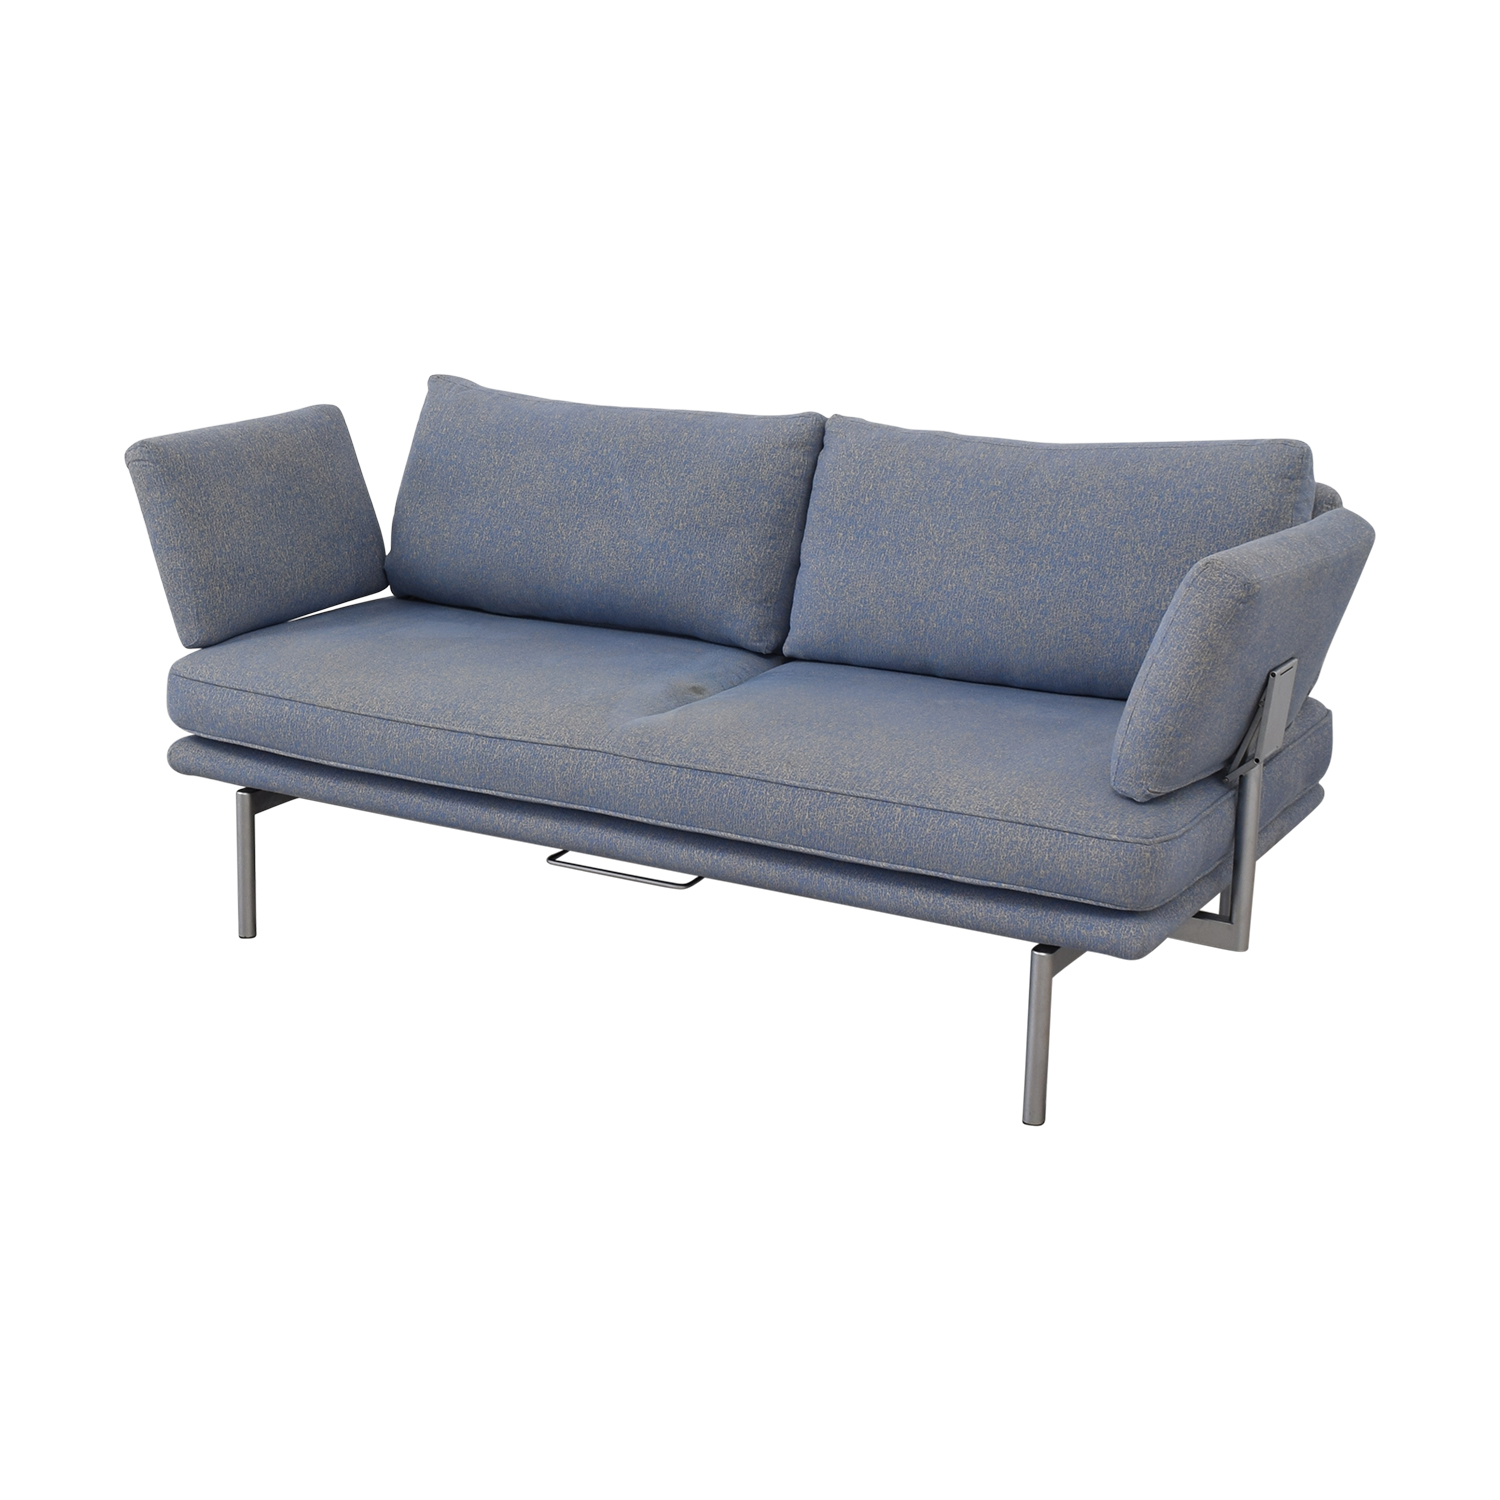 Contemporary Sofa with Adjustable Arms used